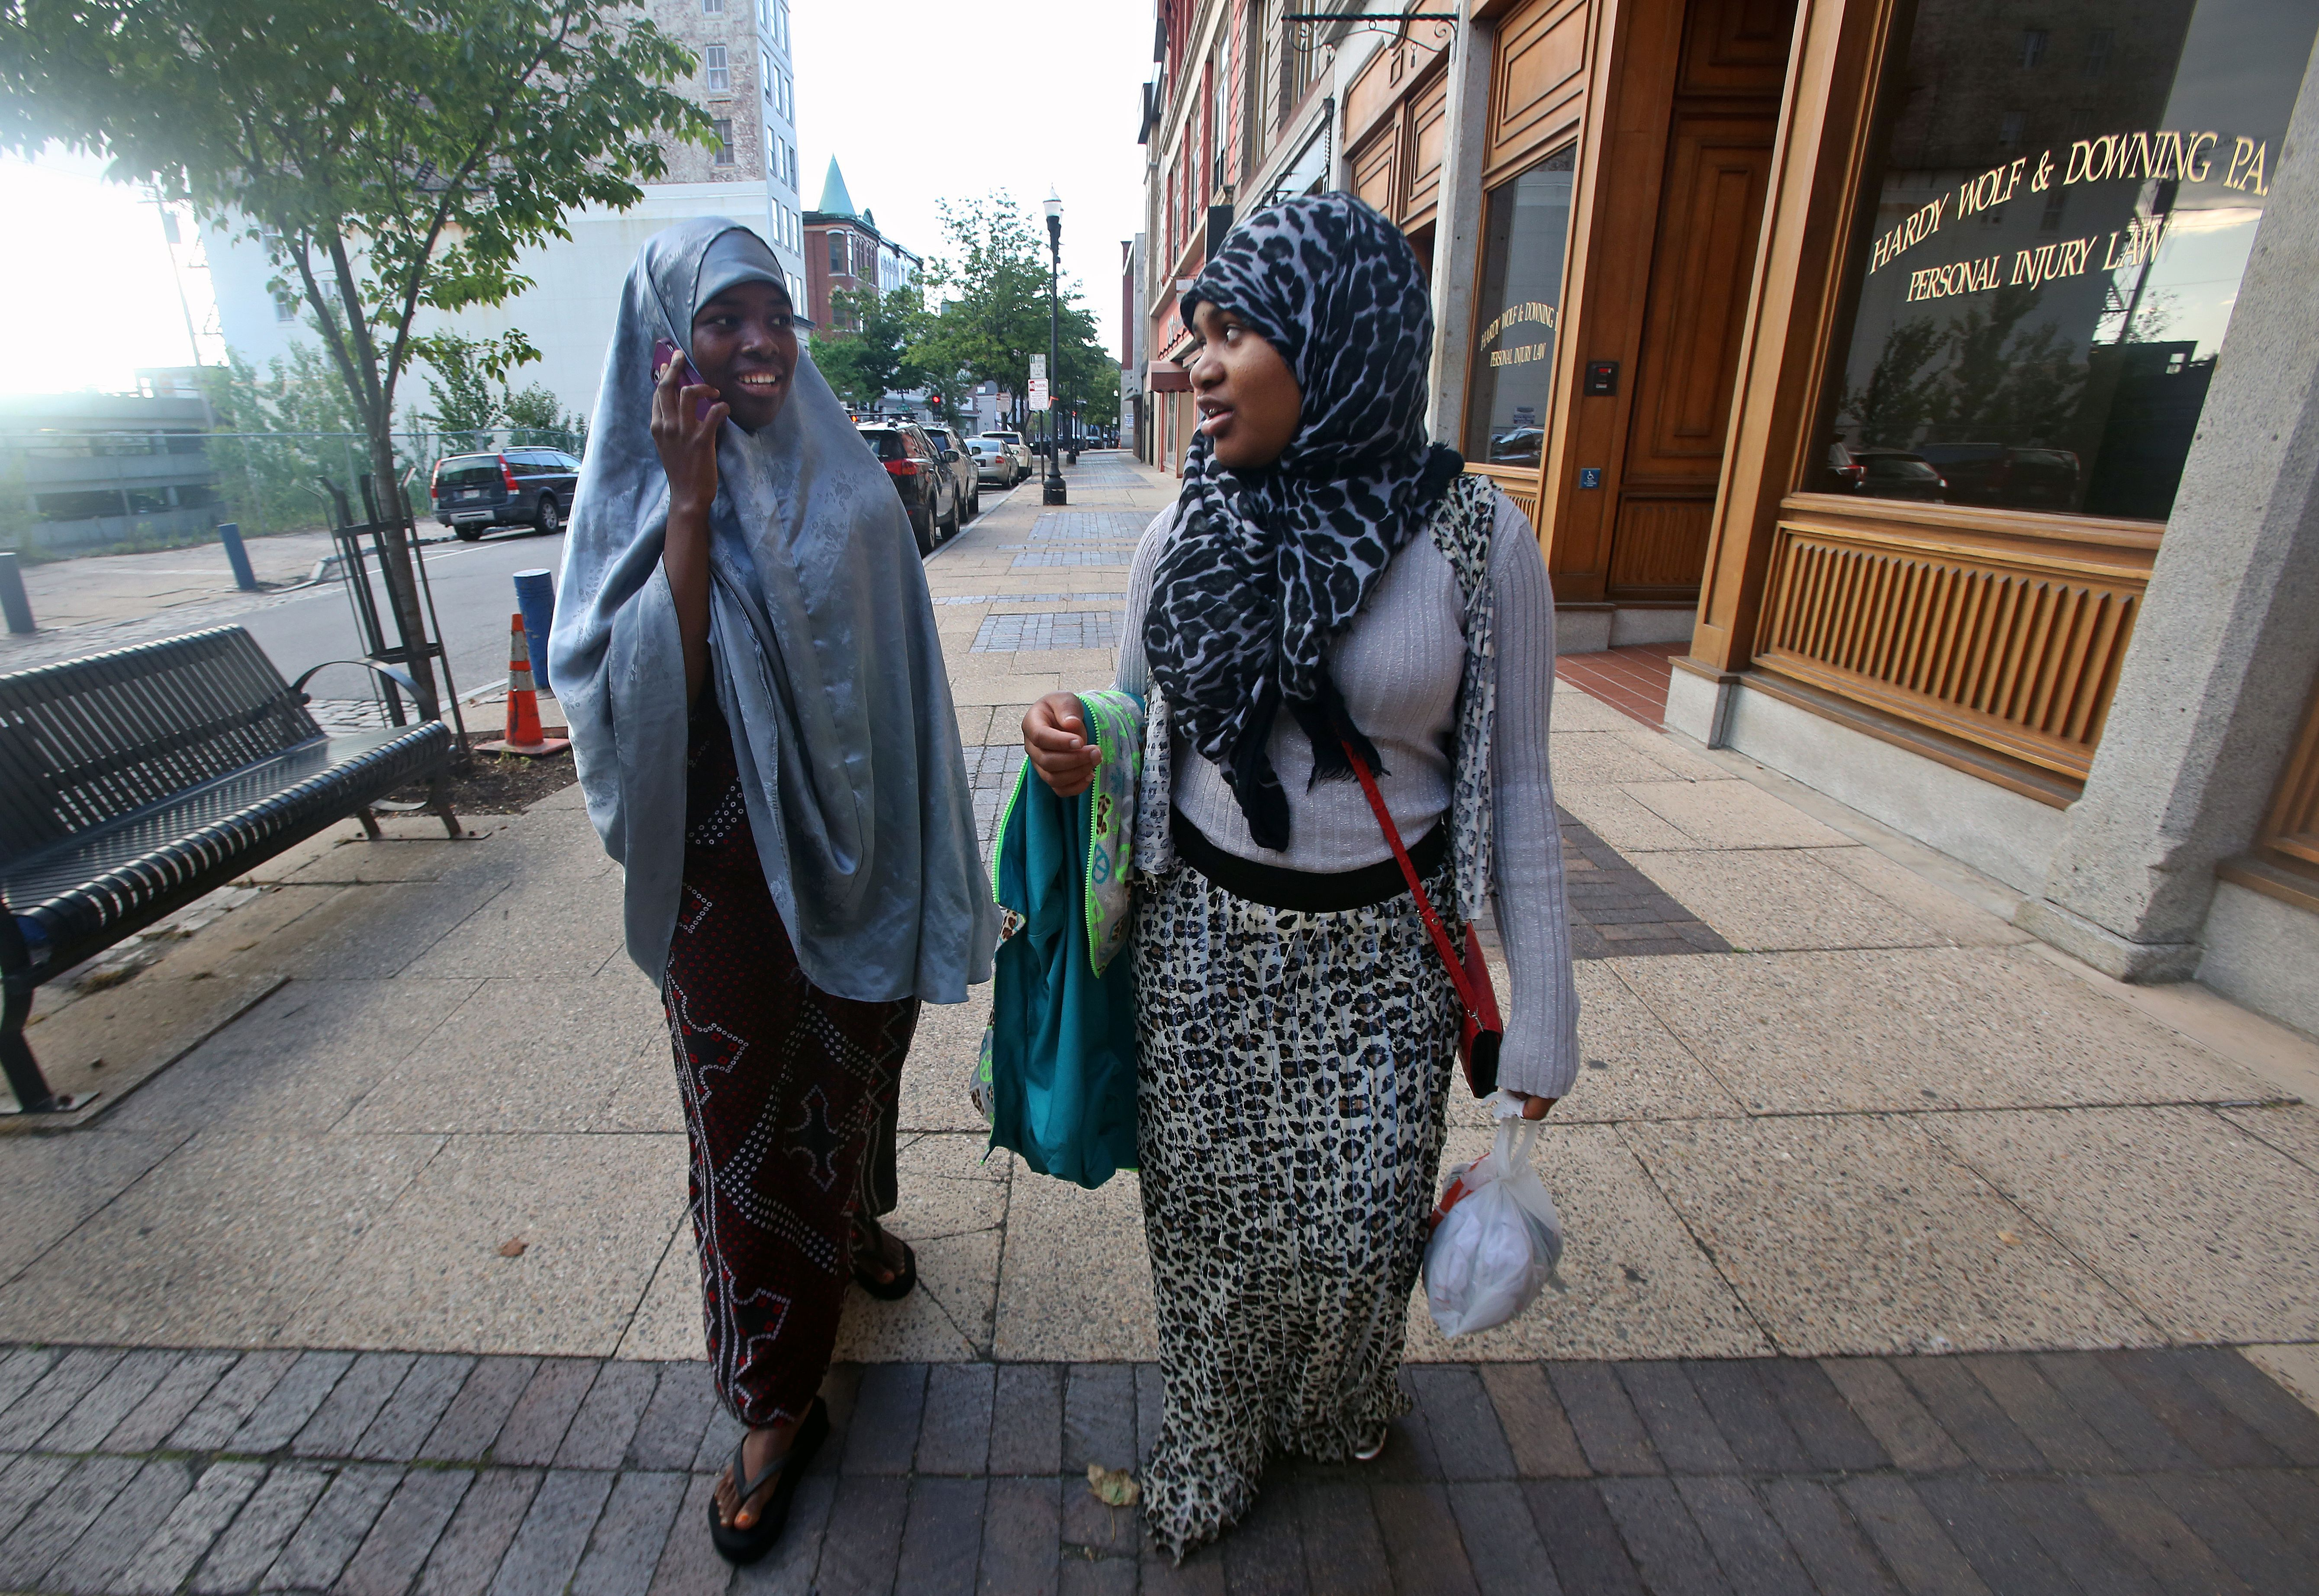 Young Muslim Designs A New Cultural Understanding The Boston Globe